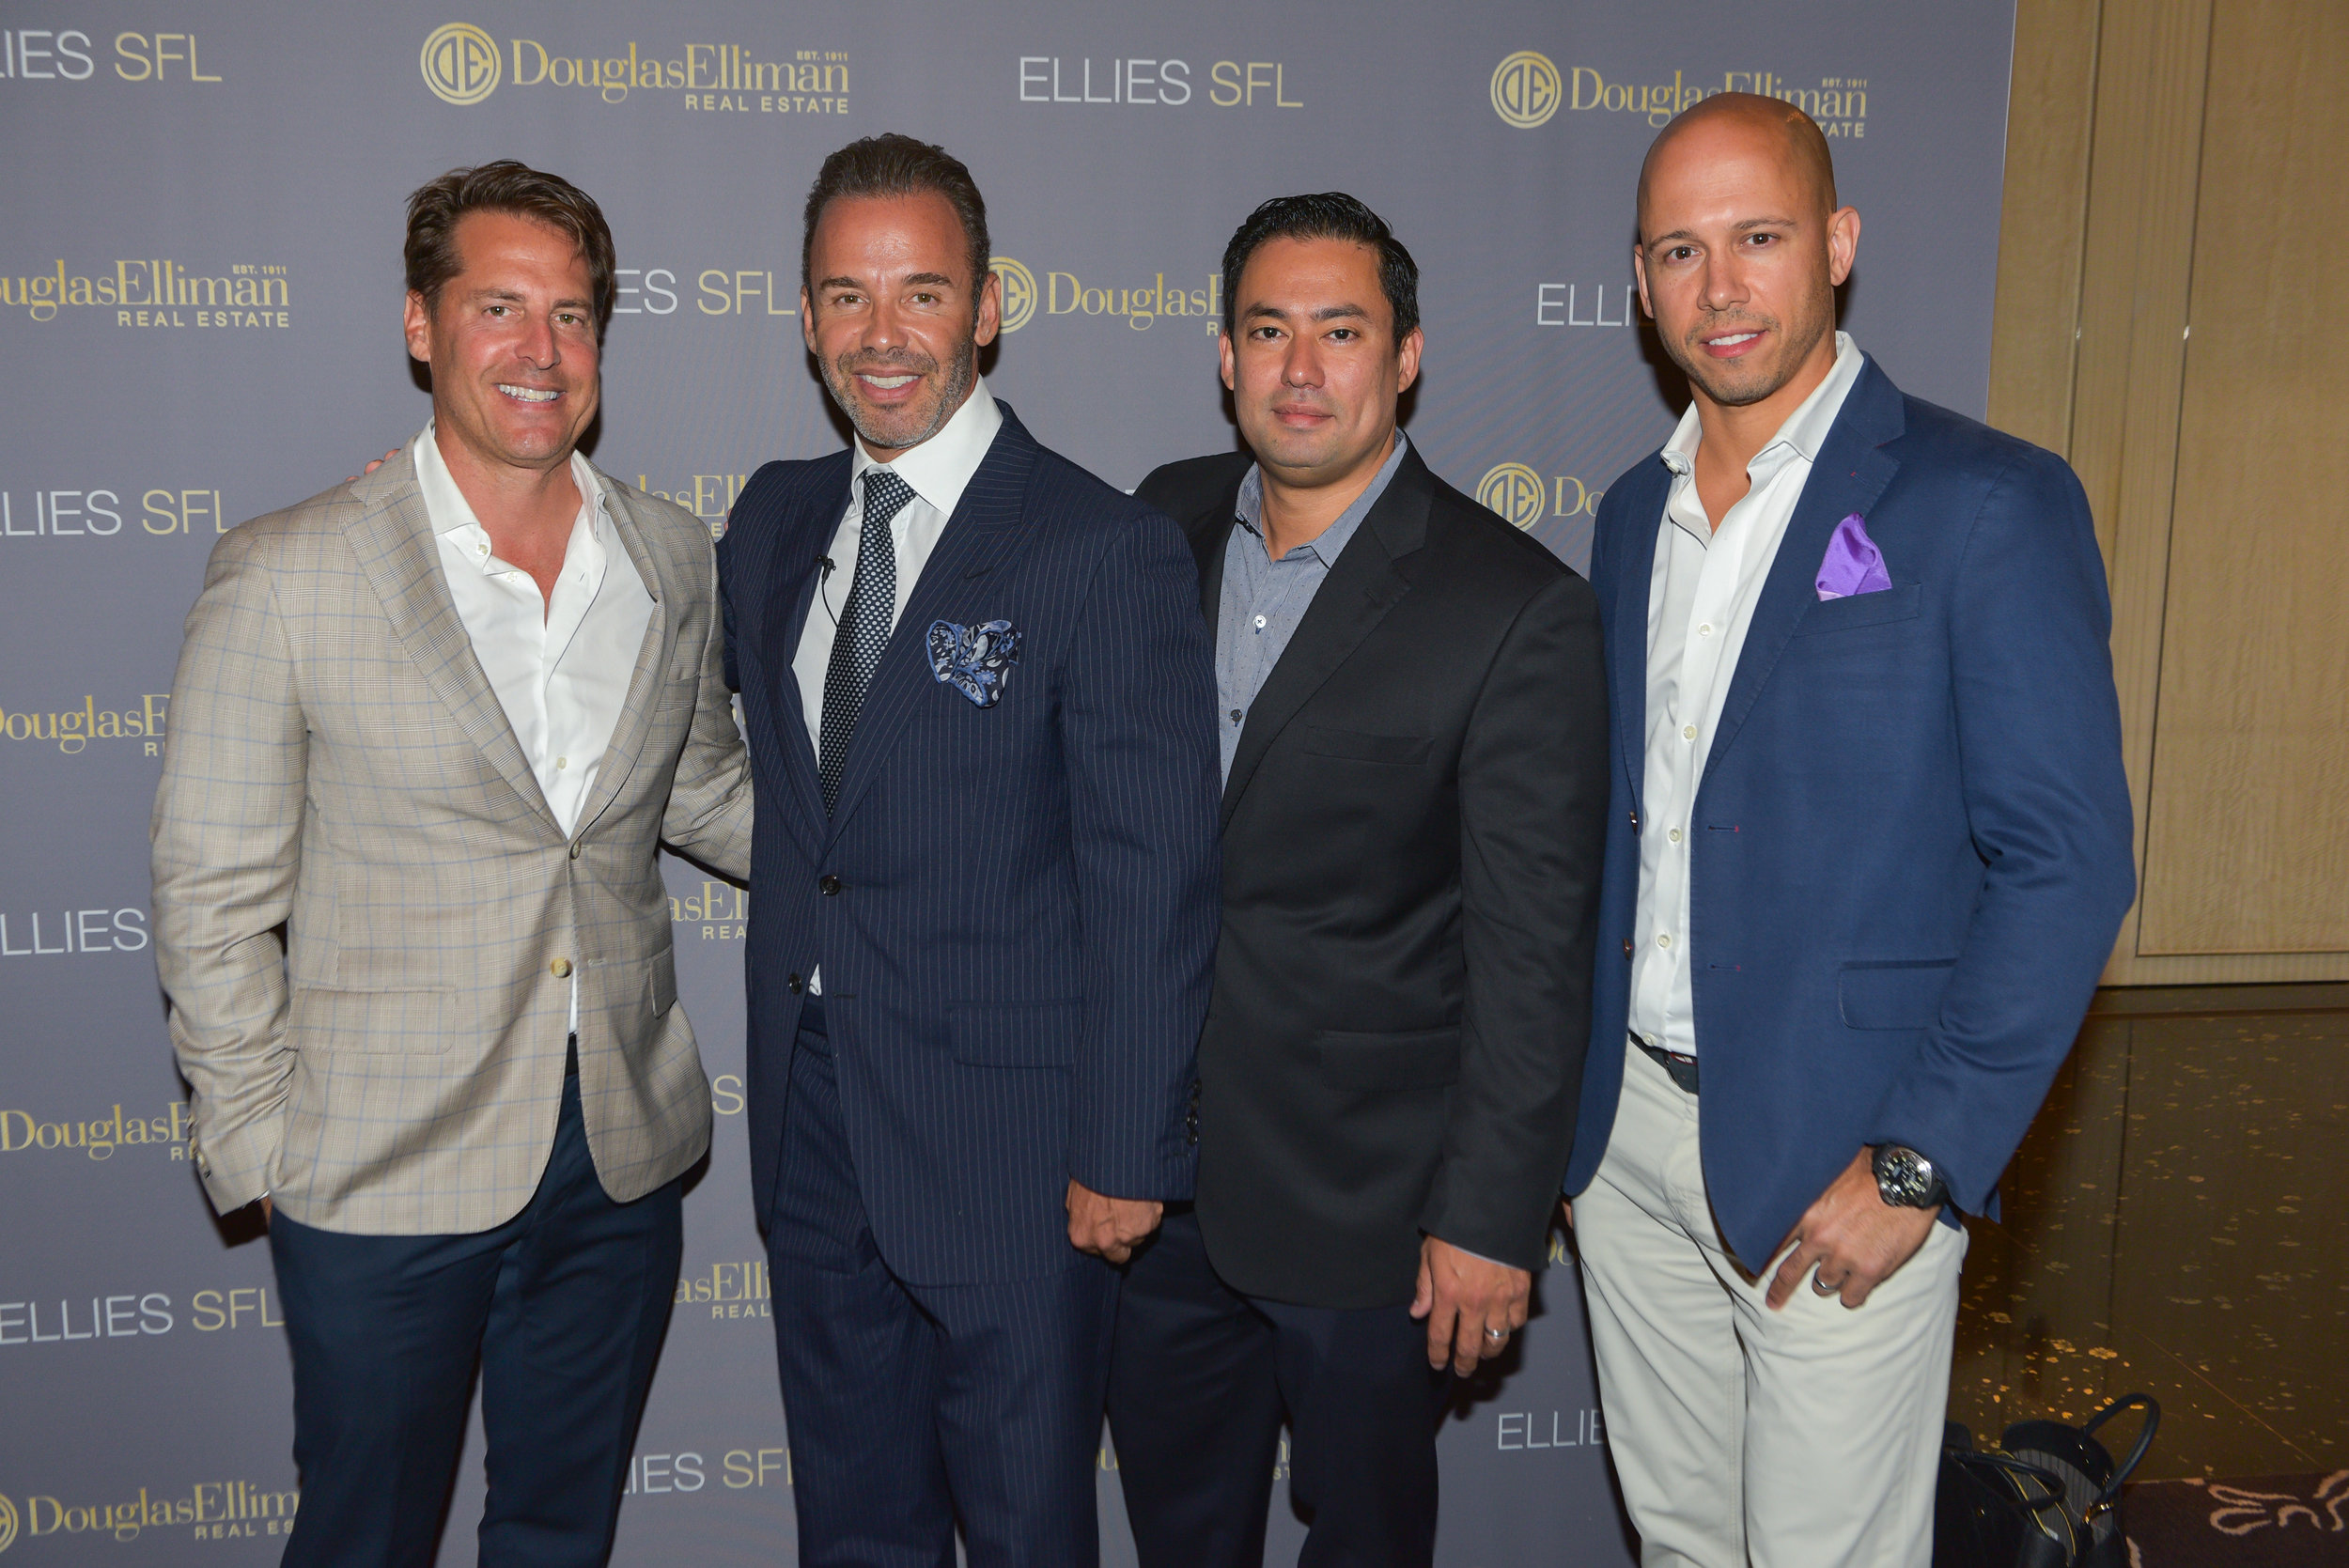 Douglas Elliman Honors Top Agents at The Florida Ellie's, Their Annual Awards Show_Brett Harris_Jay Parker_Bill Hernandez_Bryan Sereny.JPG